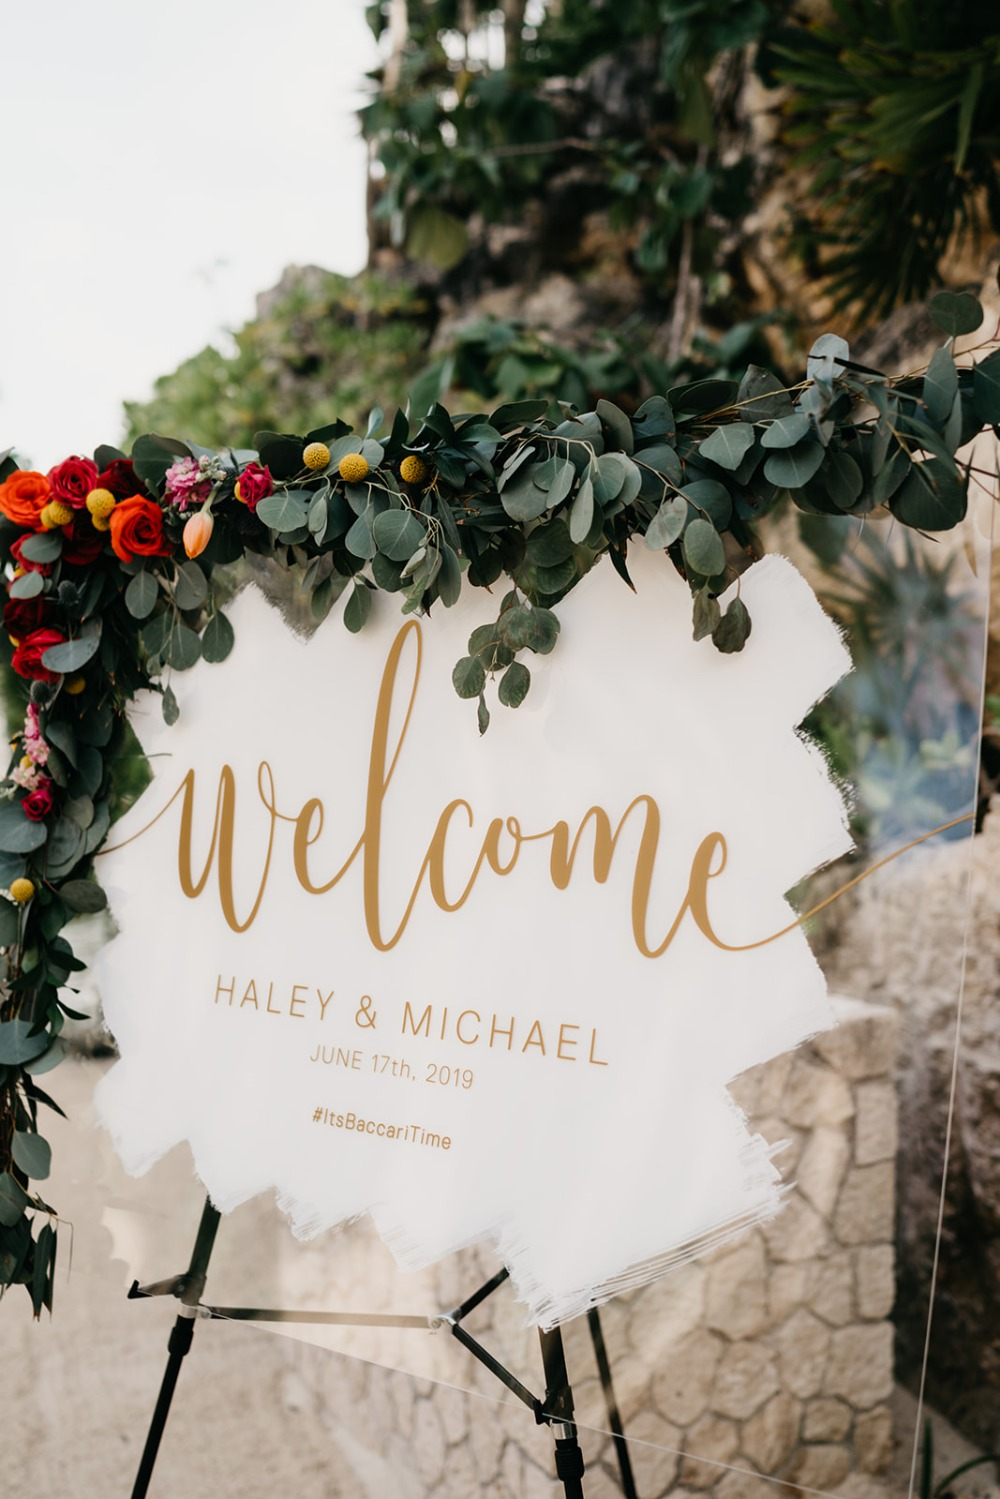 acrylic welcome wedding sign with gold letters